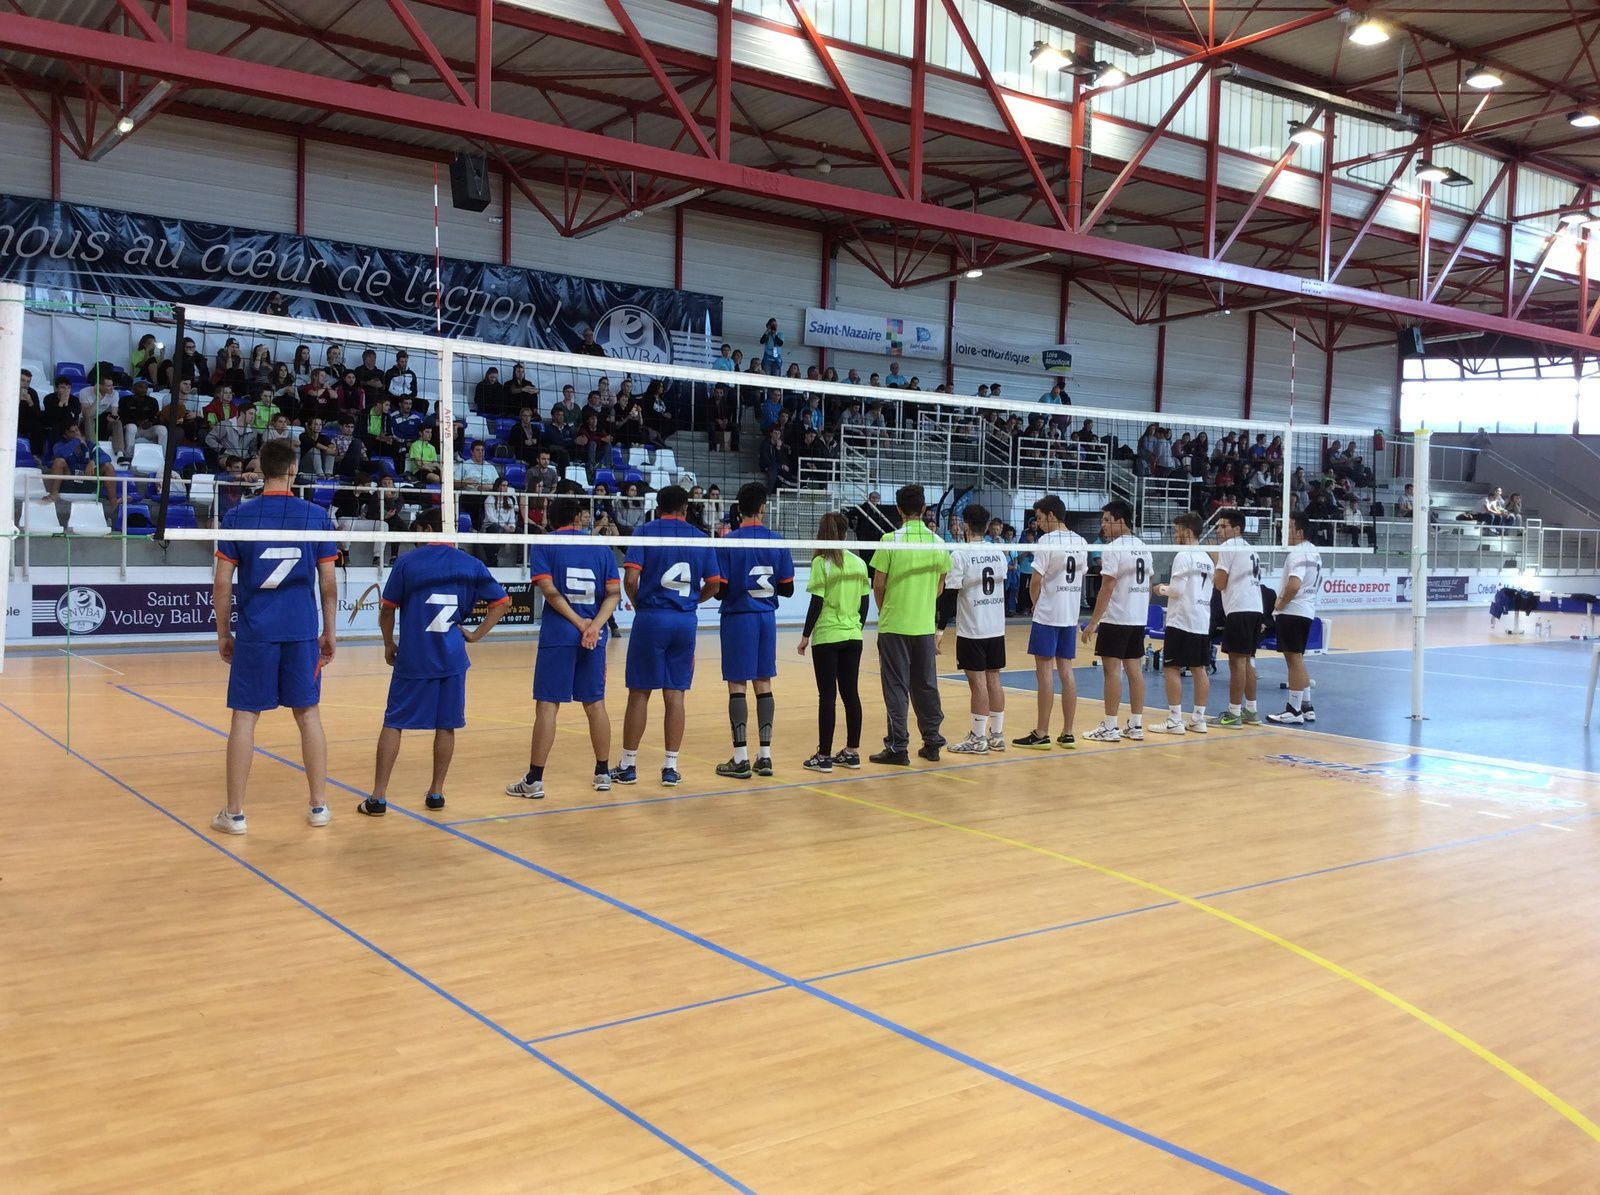 Finale du championnat de France de volley-ball 2016 (5)